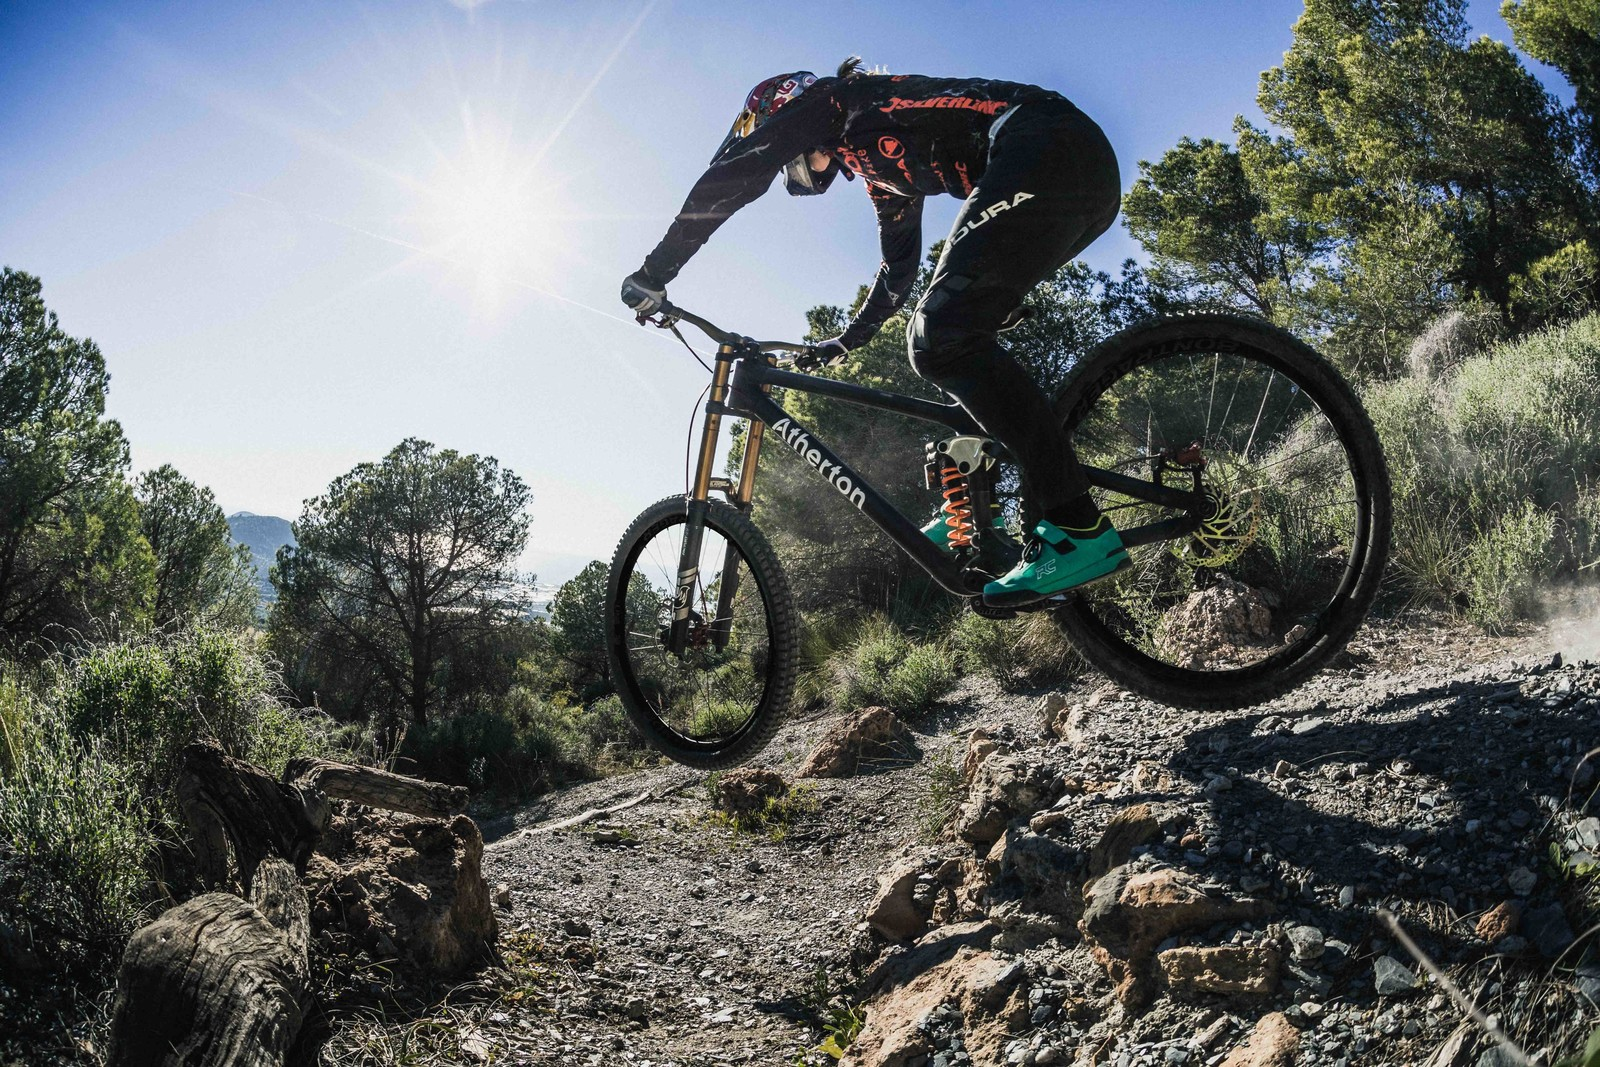 f36b42174cd Ride Concepts Announces Factory Athlete Team Including Atherton Racing 7